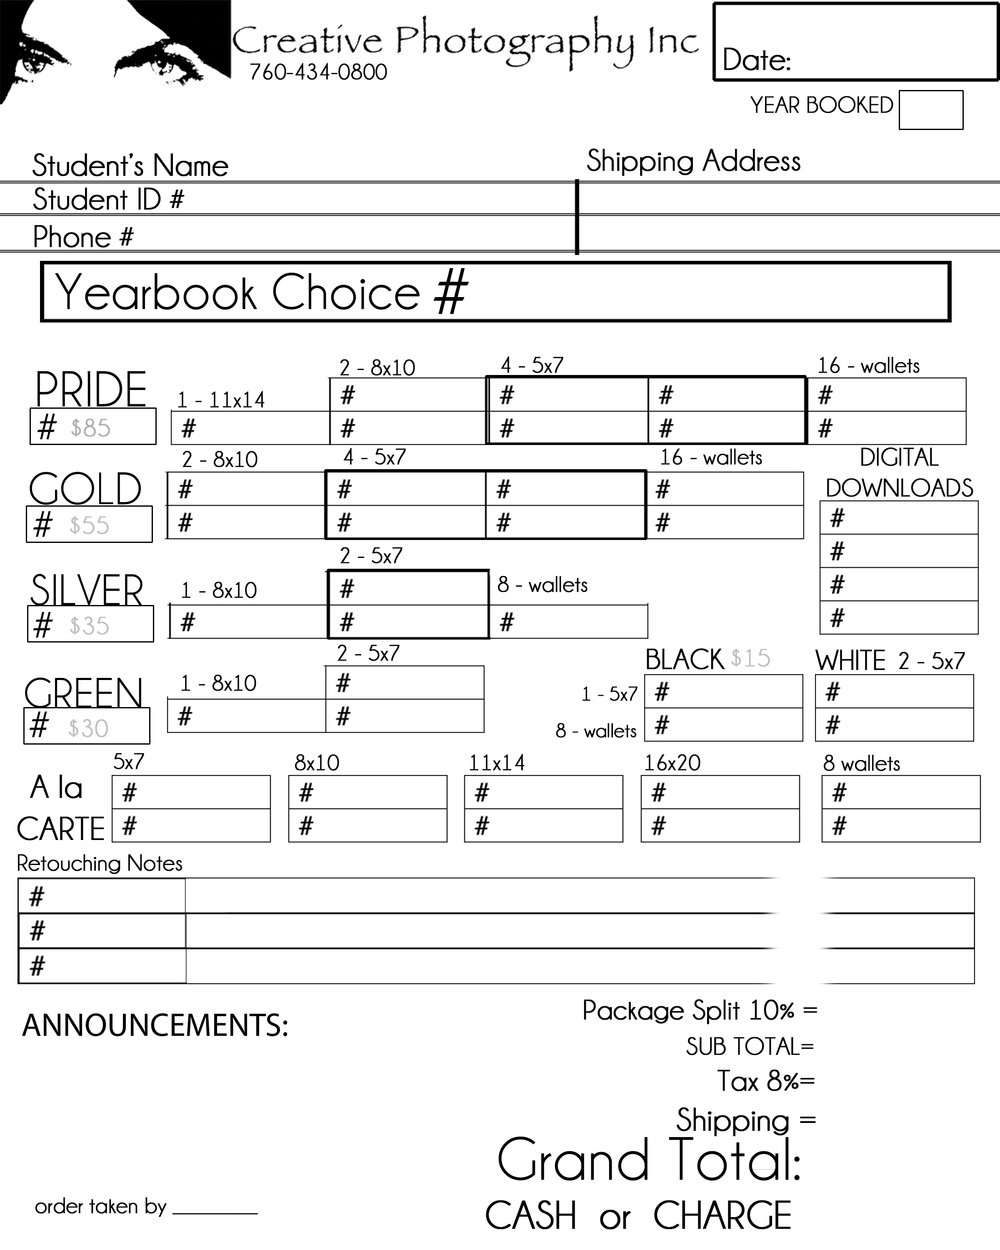 Senior Portrait Order Form.jpg